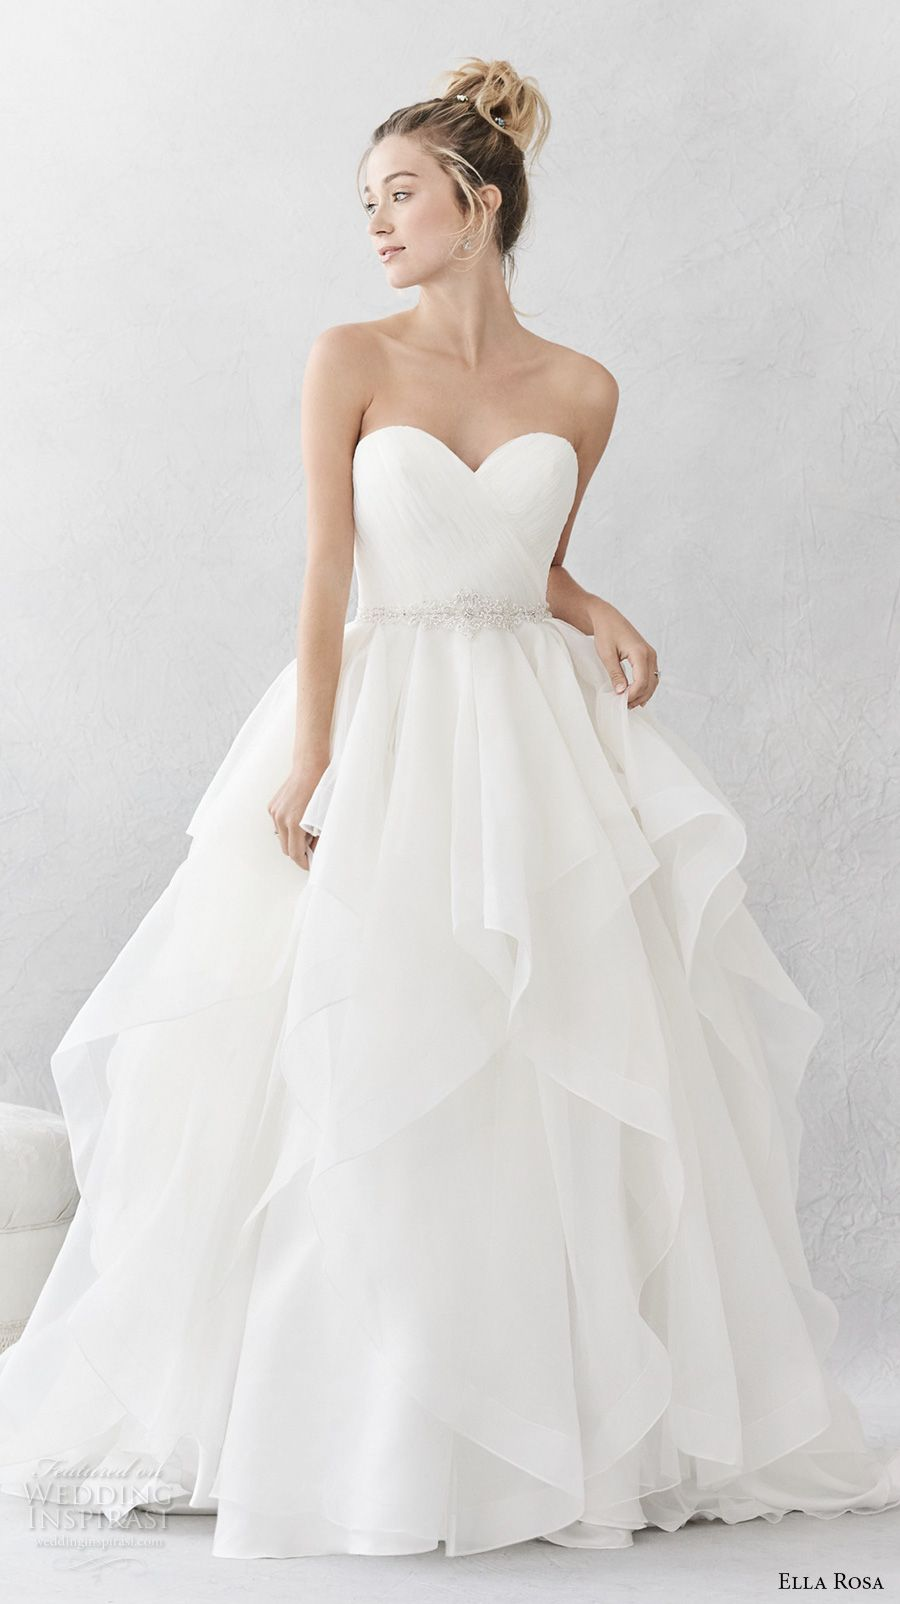 Stella york spring 2017 wedding dresses fabric covered button ella rosa spring 2017 wedding dresses ombrellifo Image collections